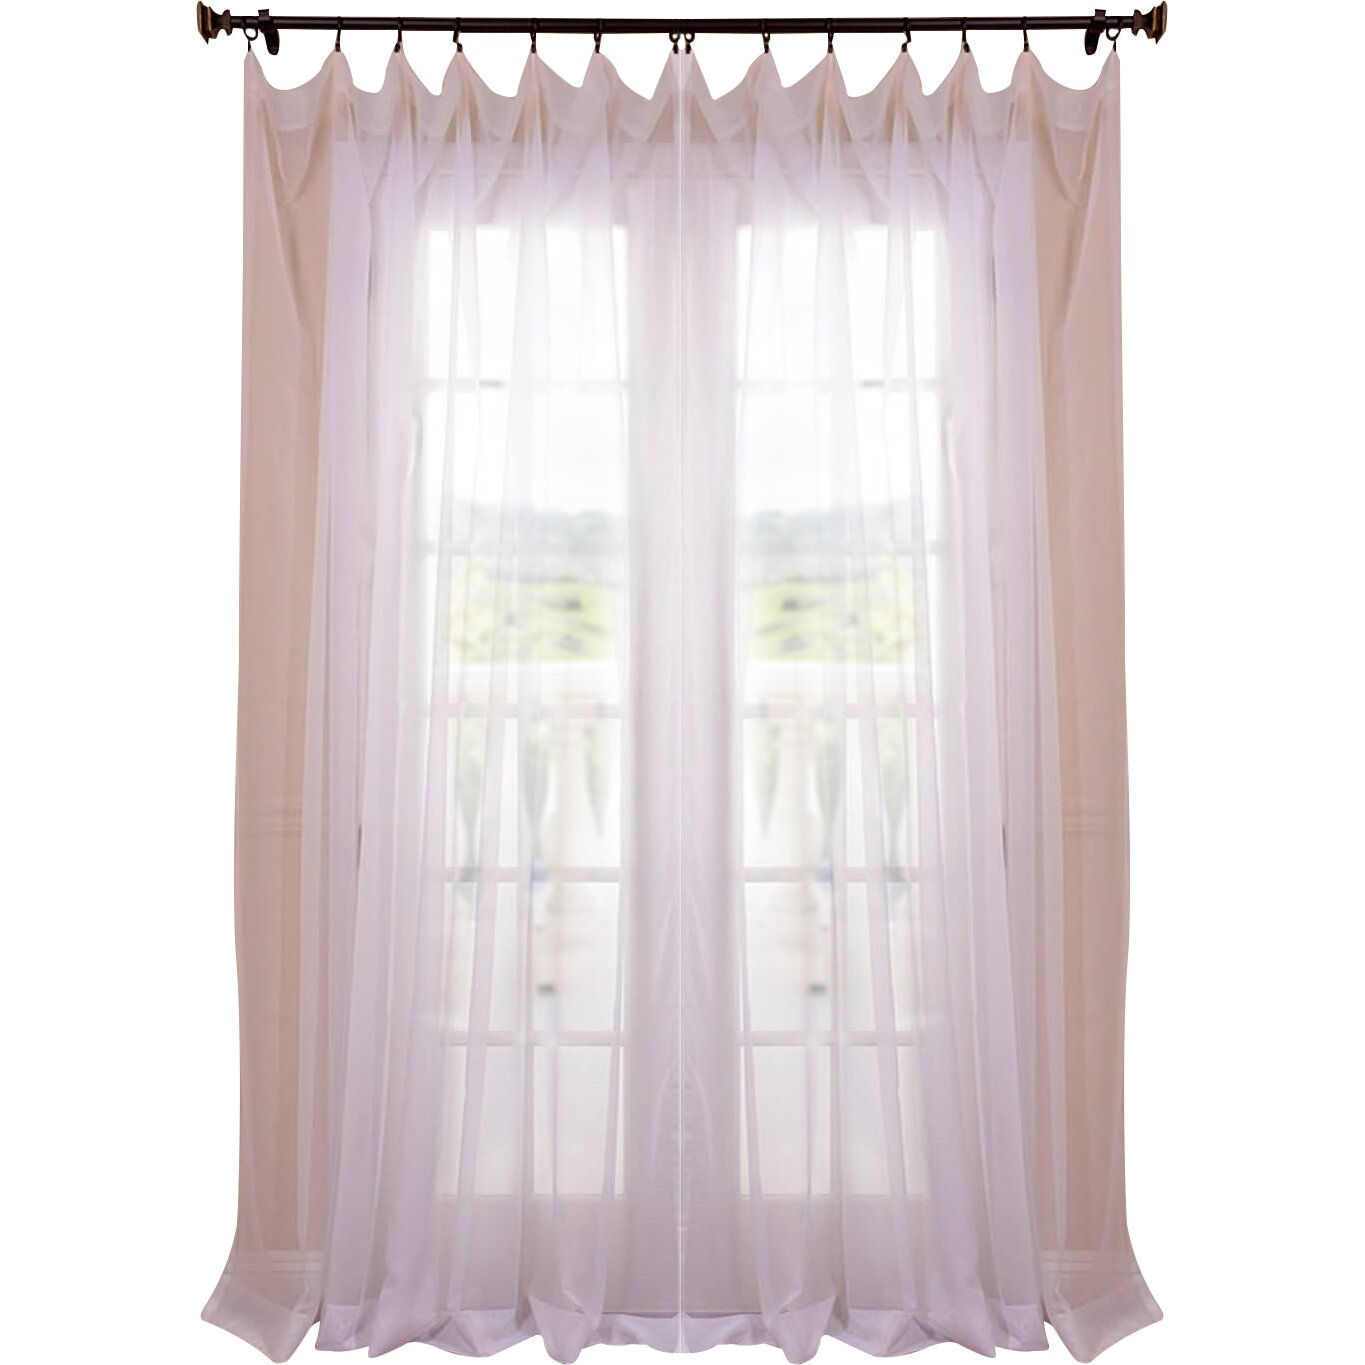 ... Curtains Black. marvelous sheer sliding orange curtains ceiling to